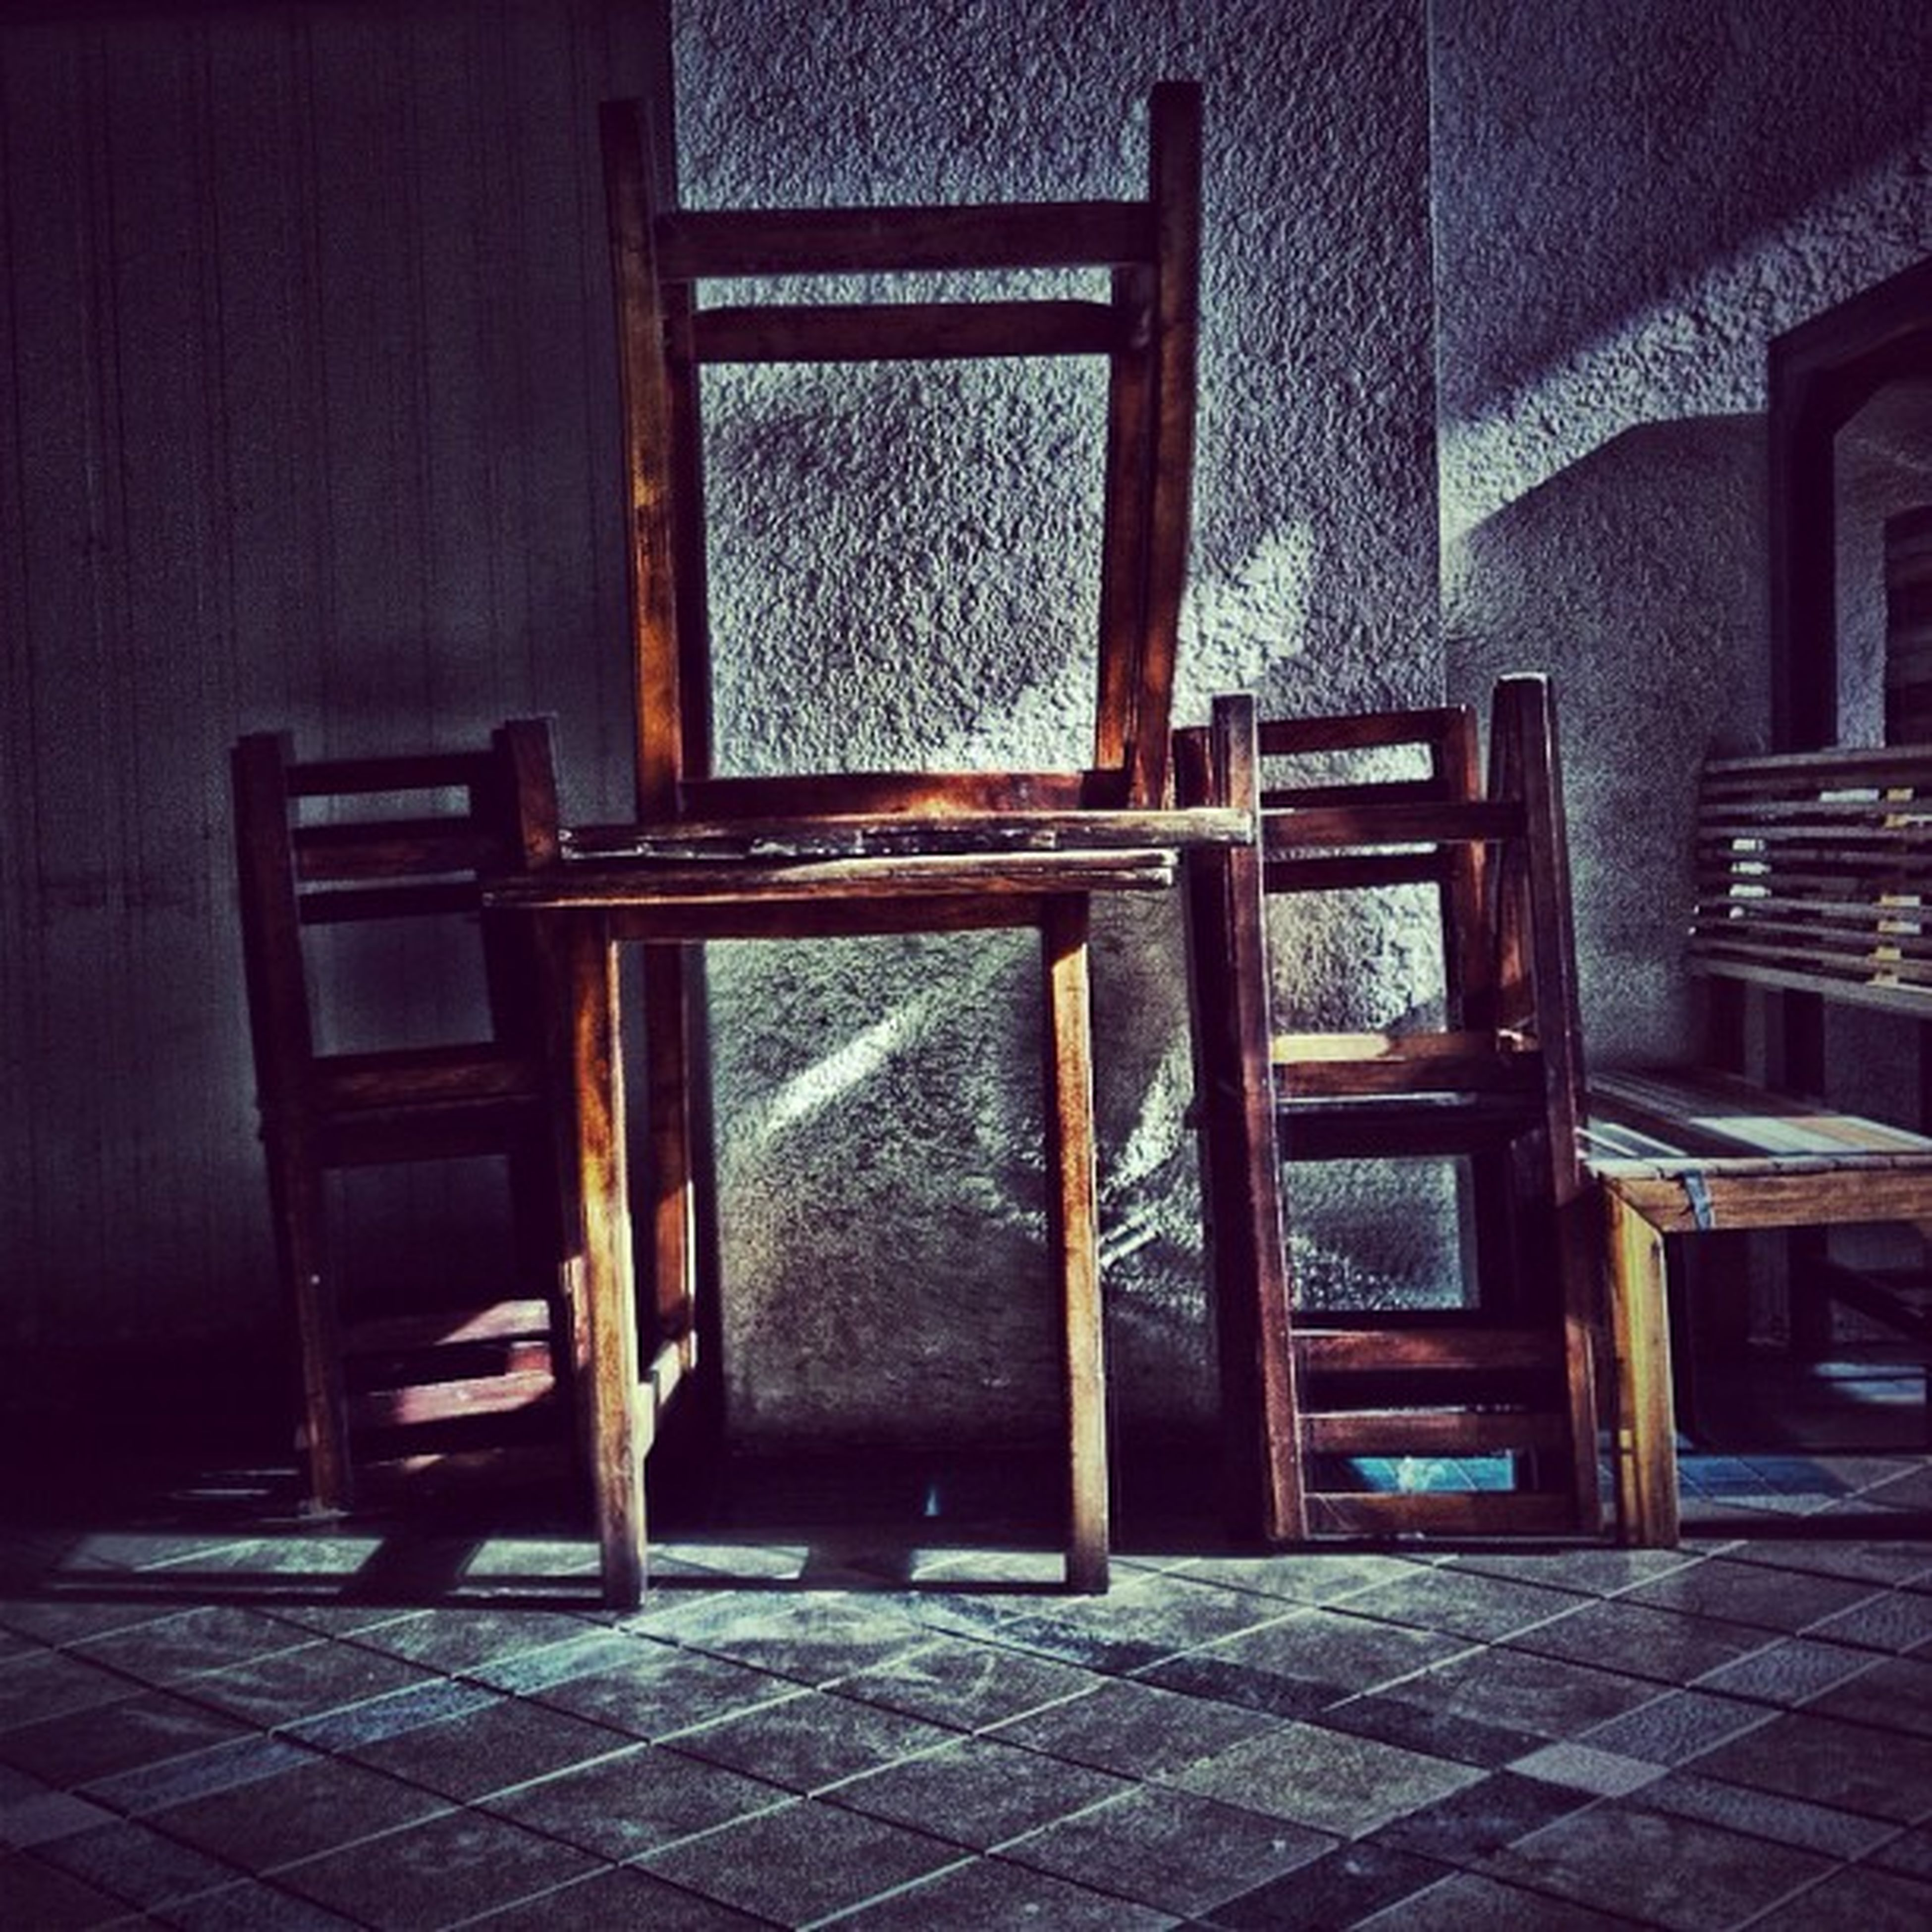 chair, built structure, architecture, house, indoors, wood - material, door, building exterior, absence, window, empty, furniture, table, old, day, closed, wall - building feature, home interior, entrance, no people